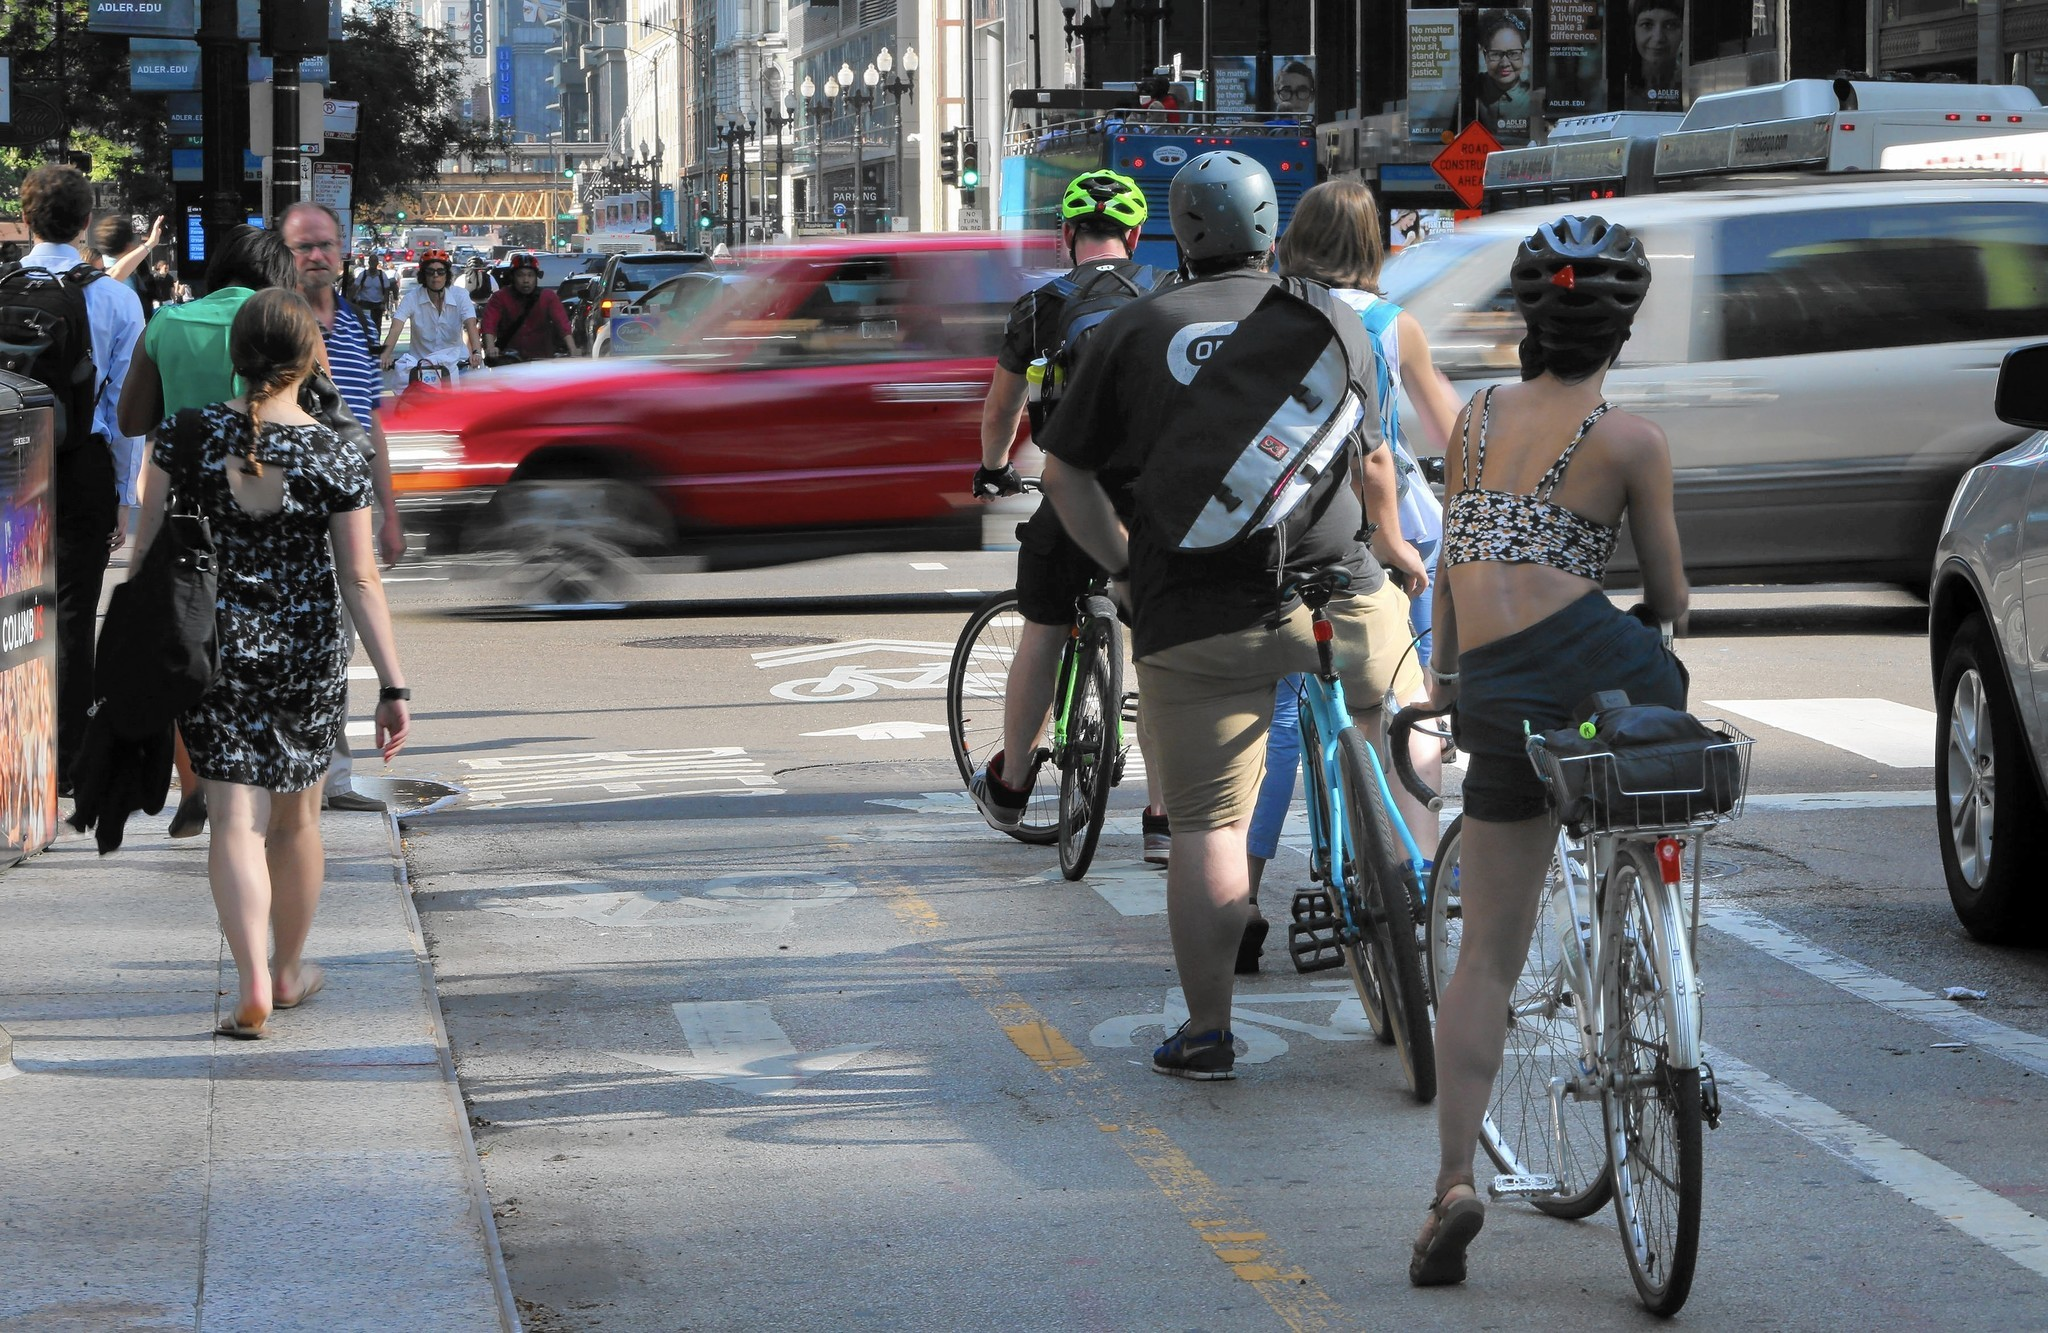 Chicago tops NYC as most bike-friendly city in U.S., magazine finds